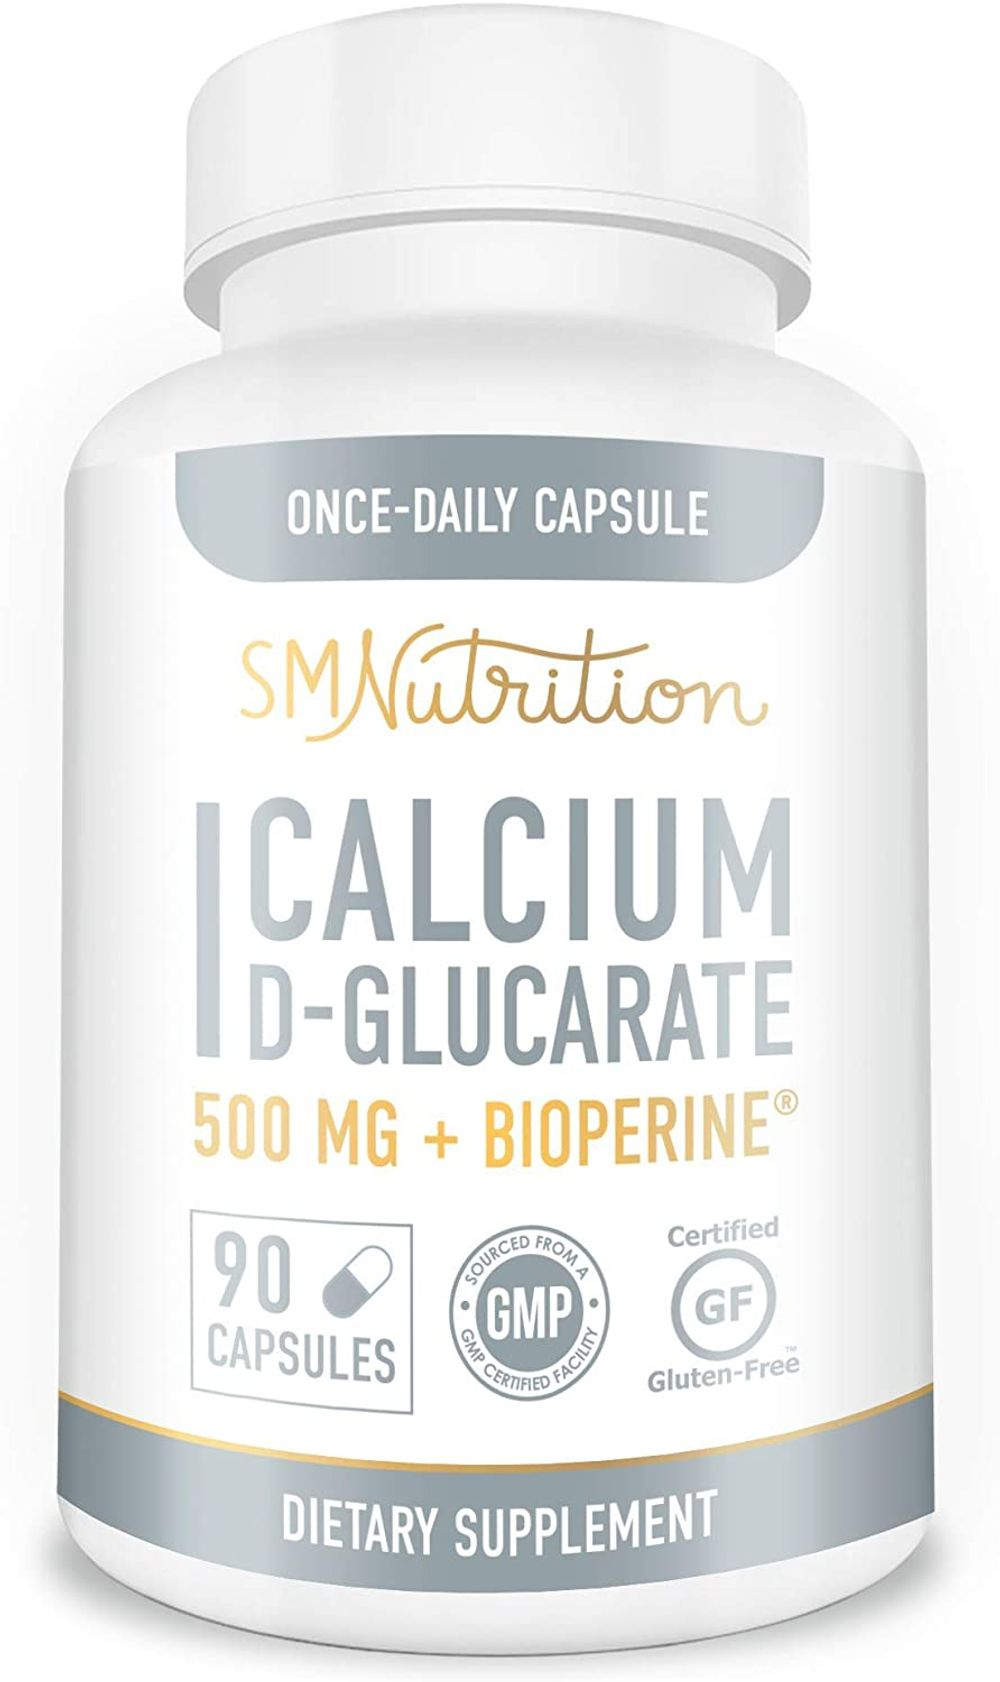 Calcium D-Glucarate 500mg 90 Vegetarian Capsules (3-Month Supply) CDG for Liver Detox & Cleanse, Weight Loss, Prostate, Metabolism, Menopause. Non-GMO, Soy-Free, Keto-Friendly